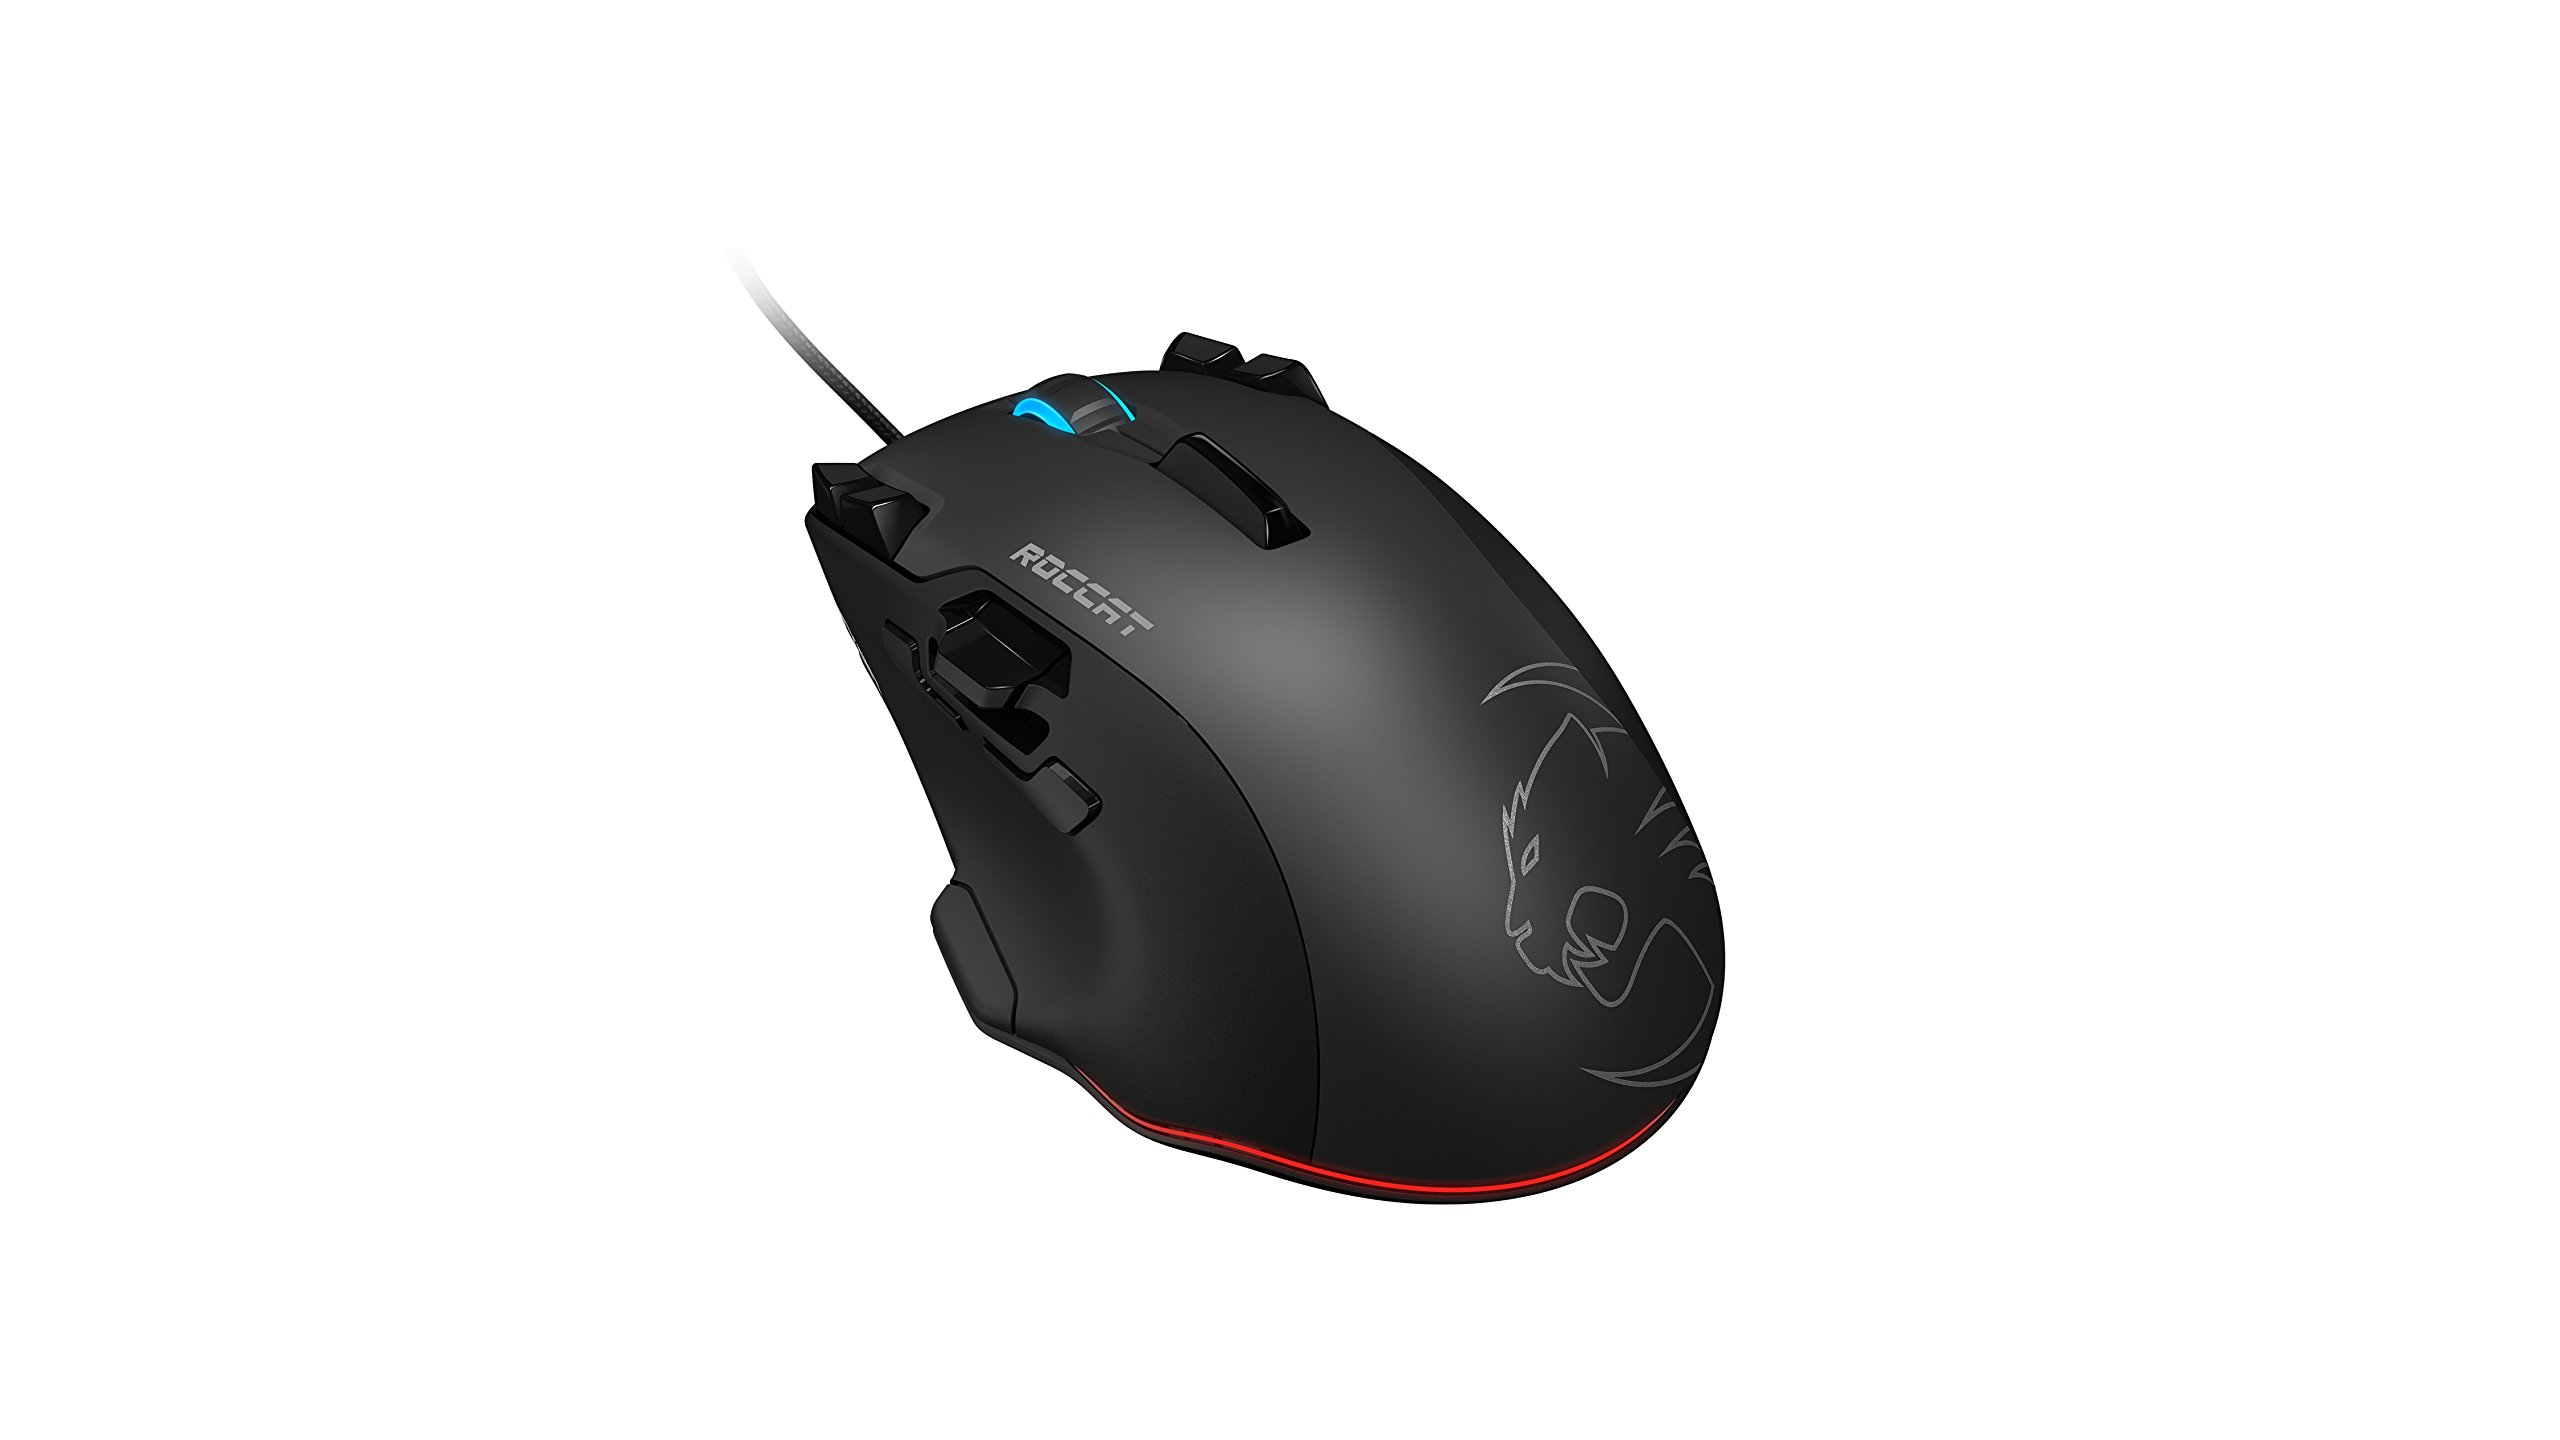 ROCCAT Tyon R3 Programmable Laser USB Gaming Mouse with Tracking Control, Customizable Thumb Paddle and Fin Switch, Onboard Memory and MCU, 8200 DPI and RGBY Illumination for PC, Laptop – BLACK by ROCCAT